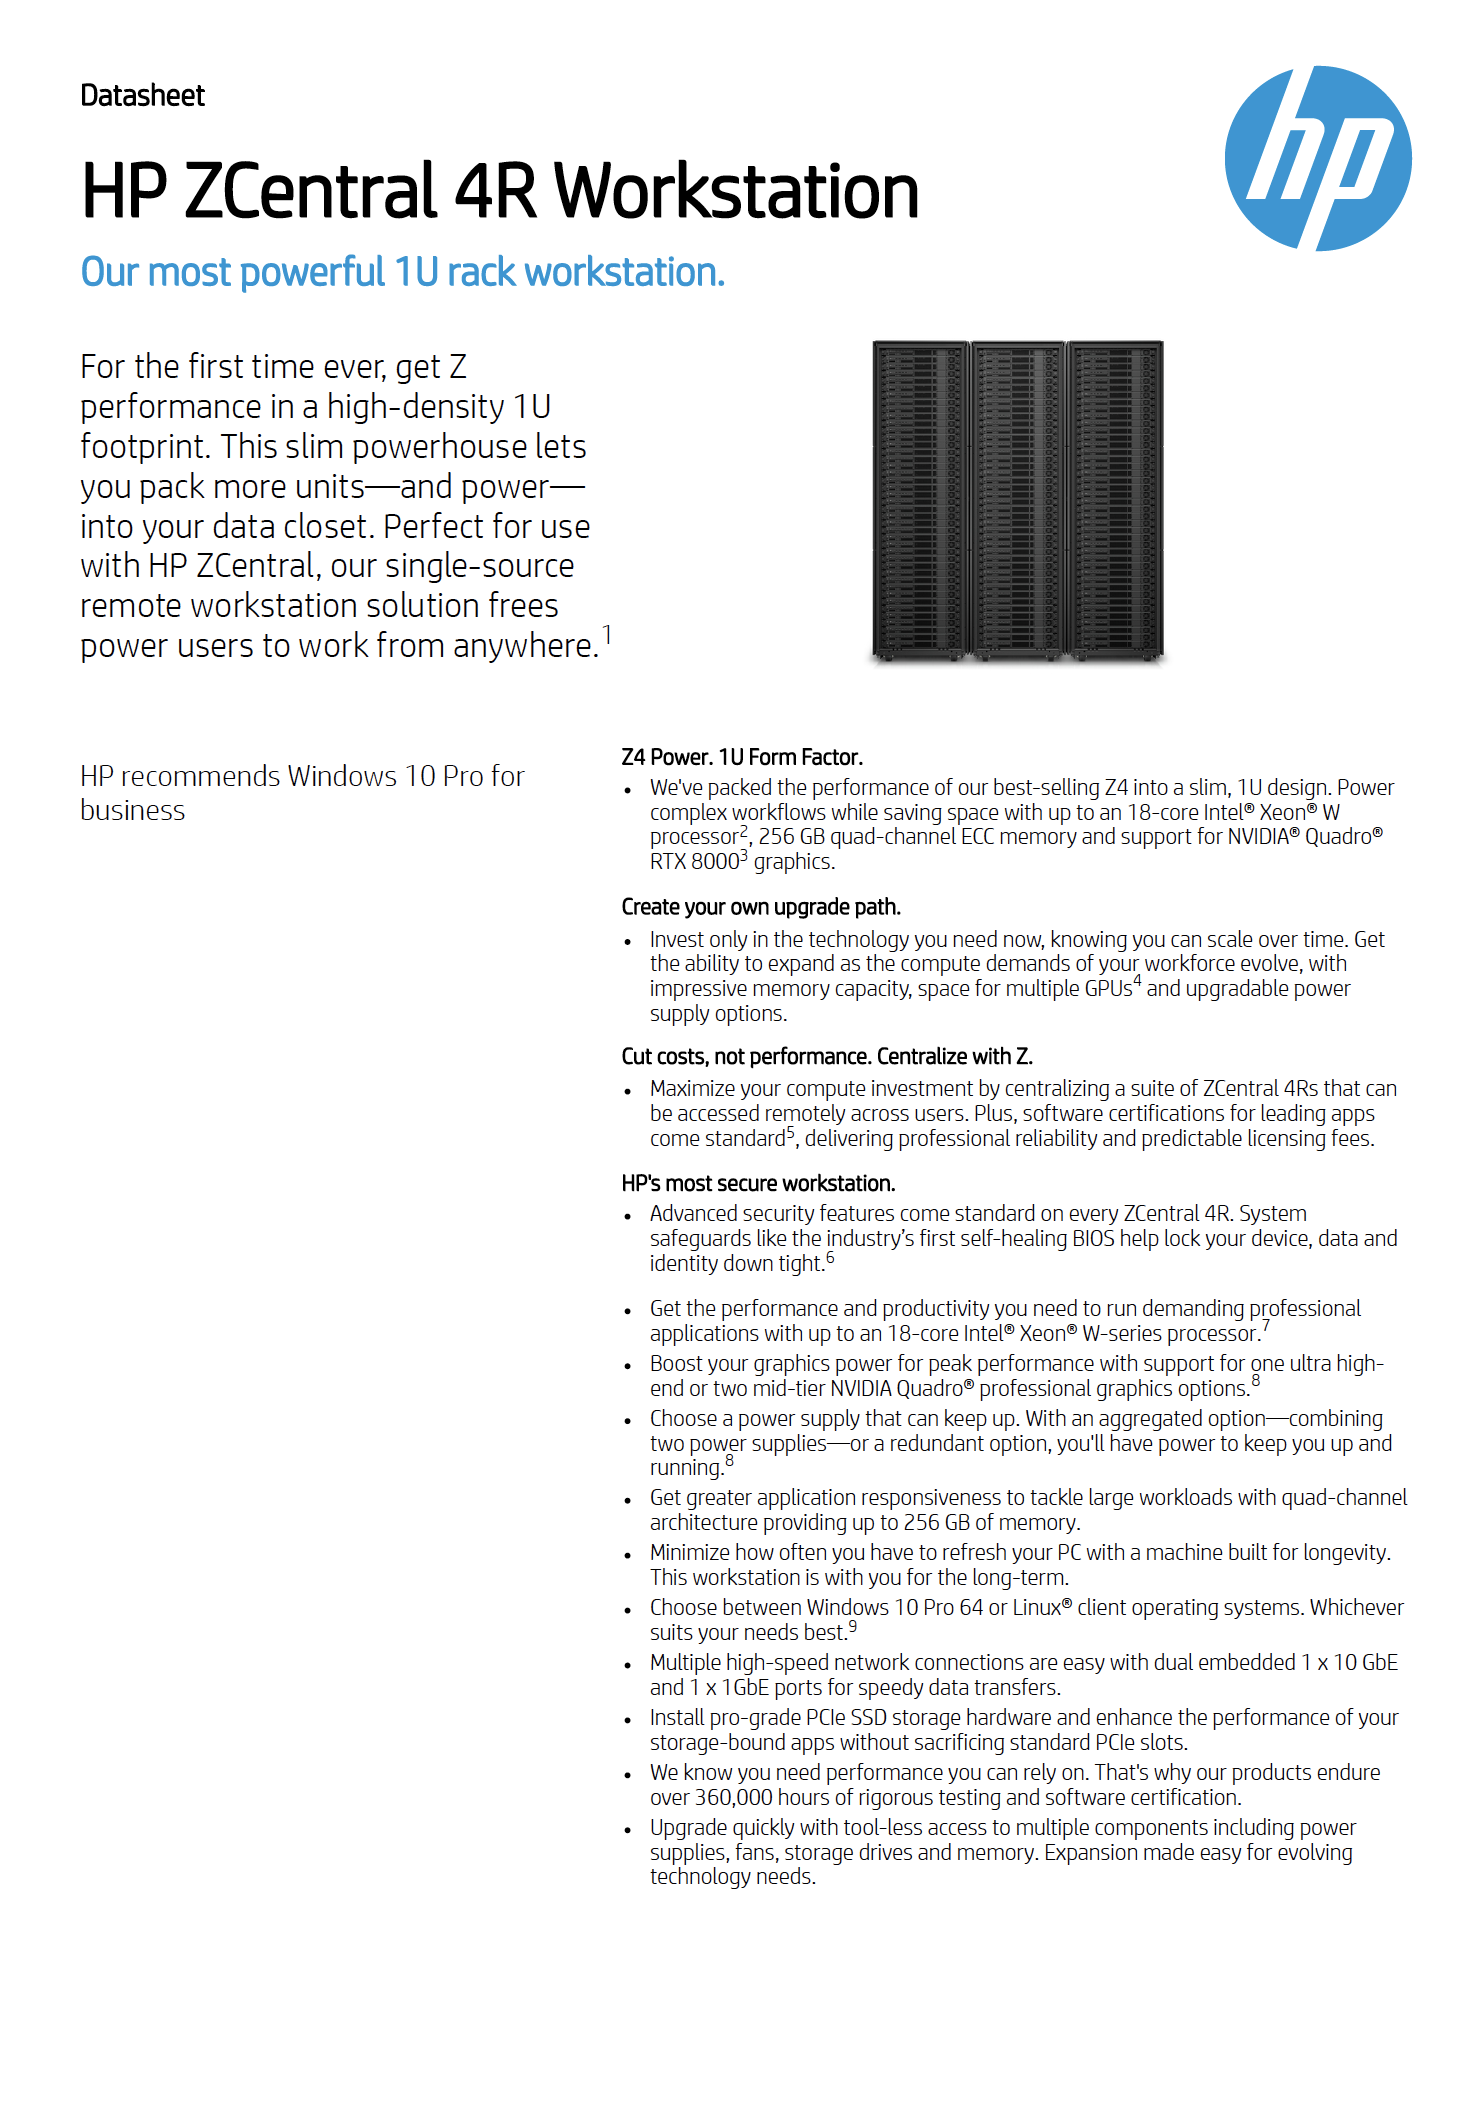 Download the data sheet for the HP ZCentral 4R Workstation